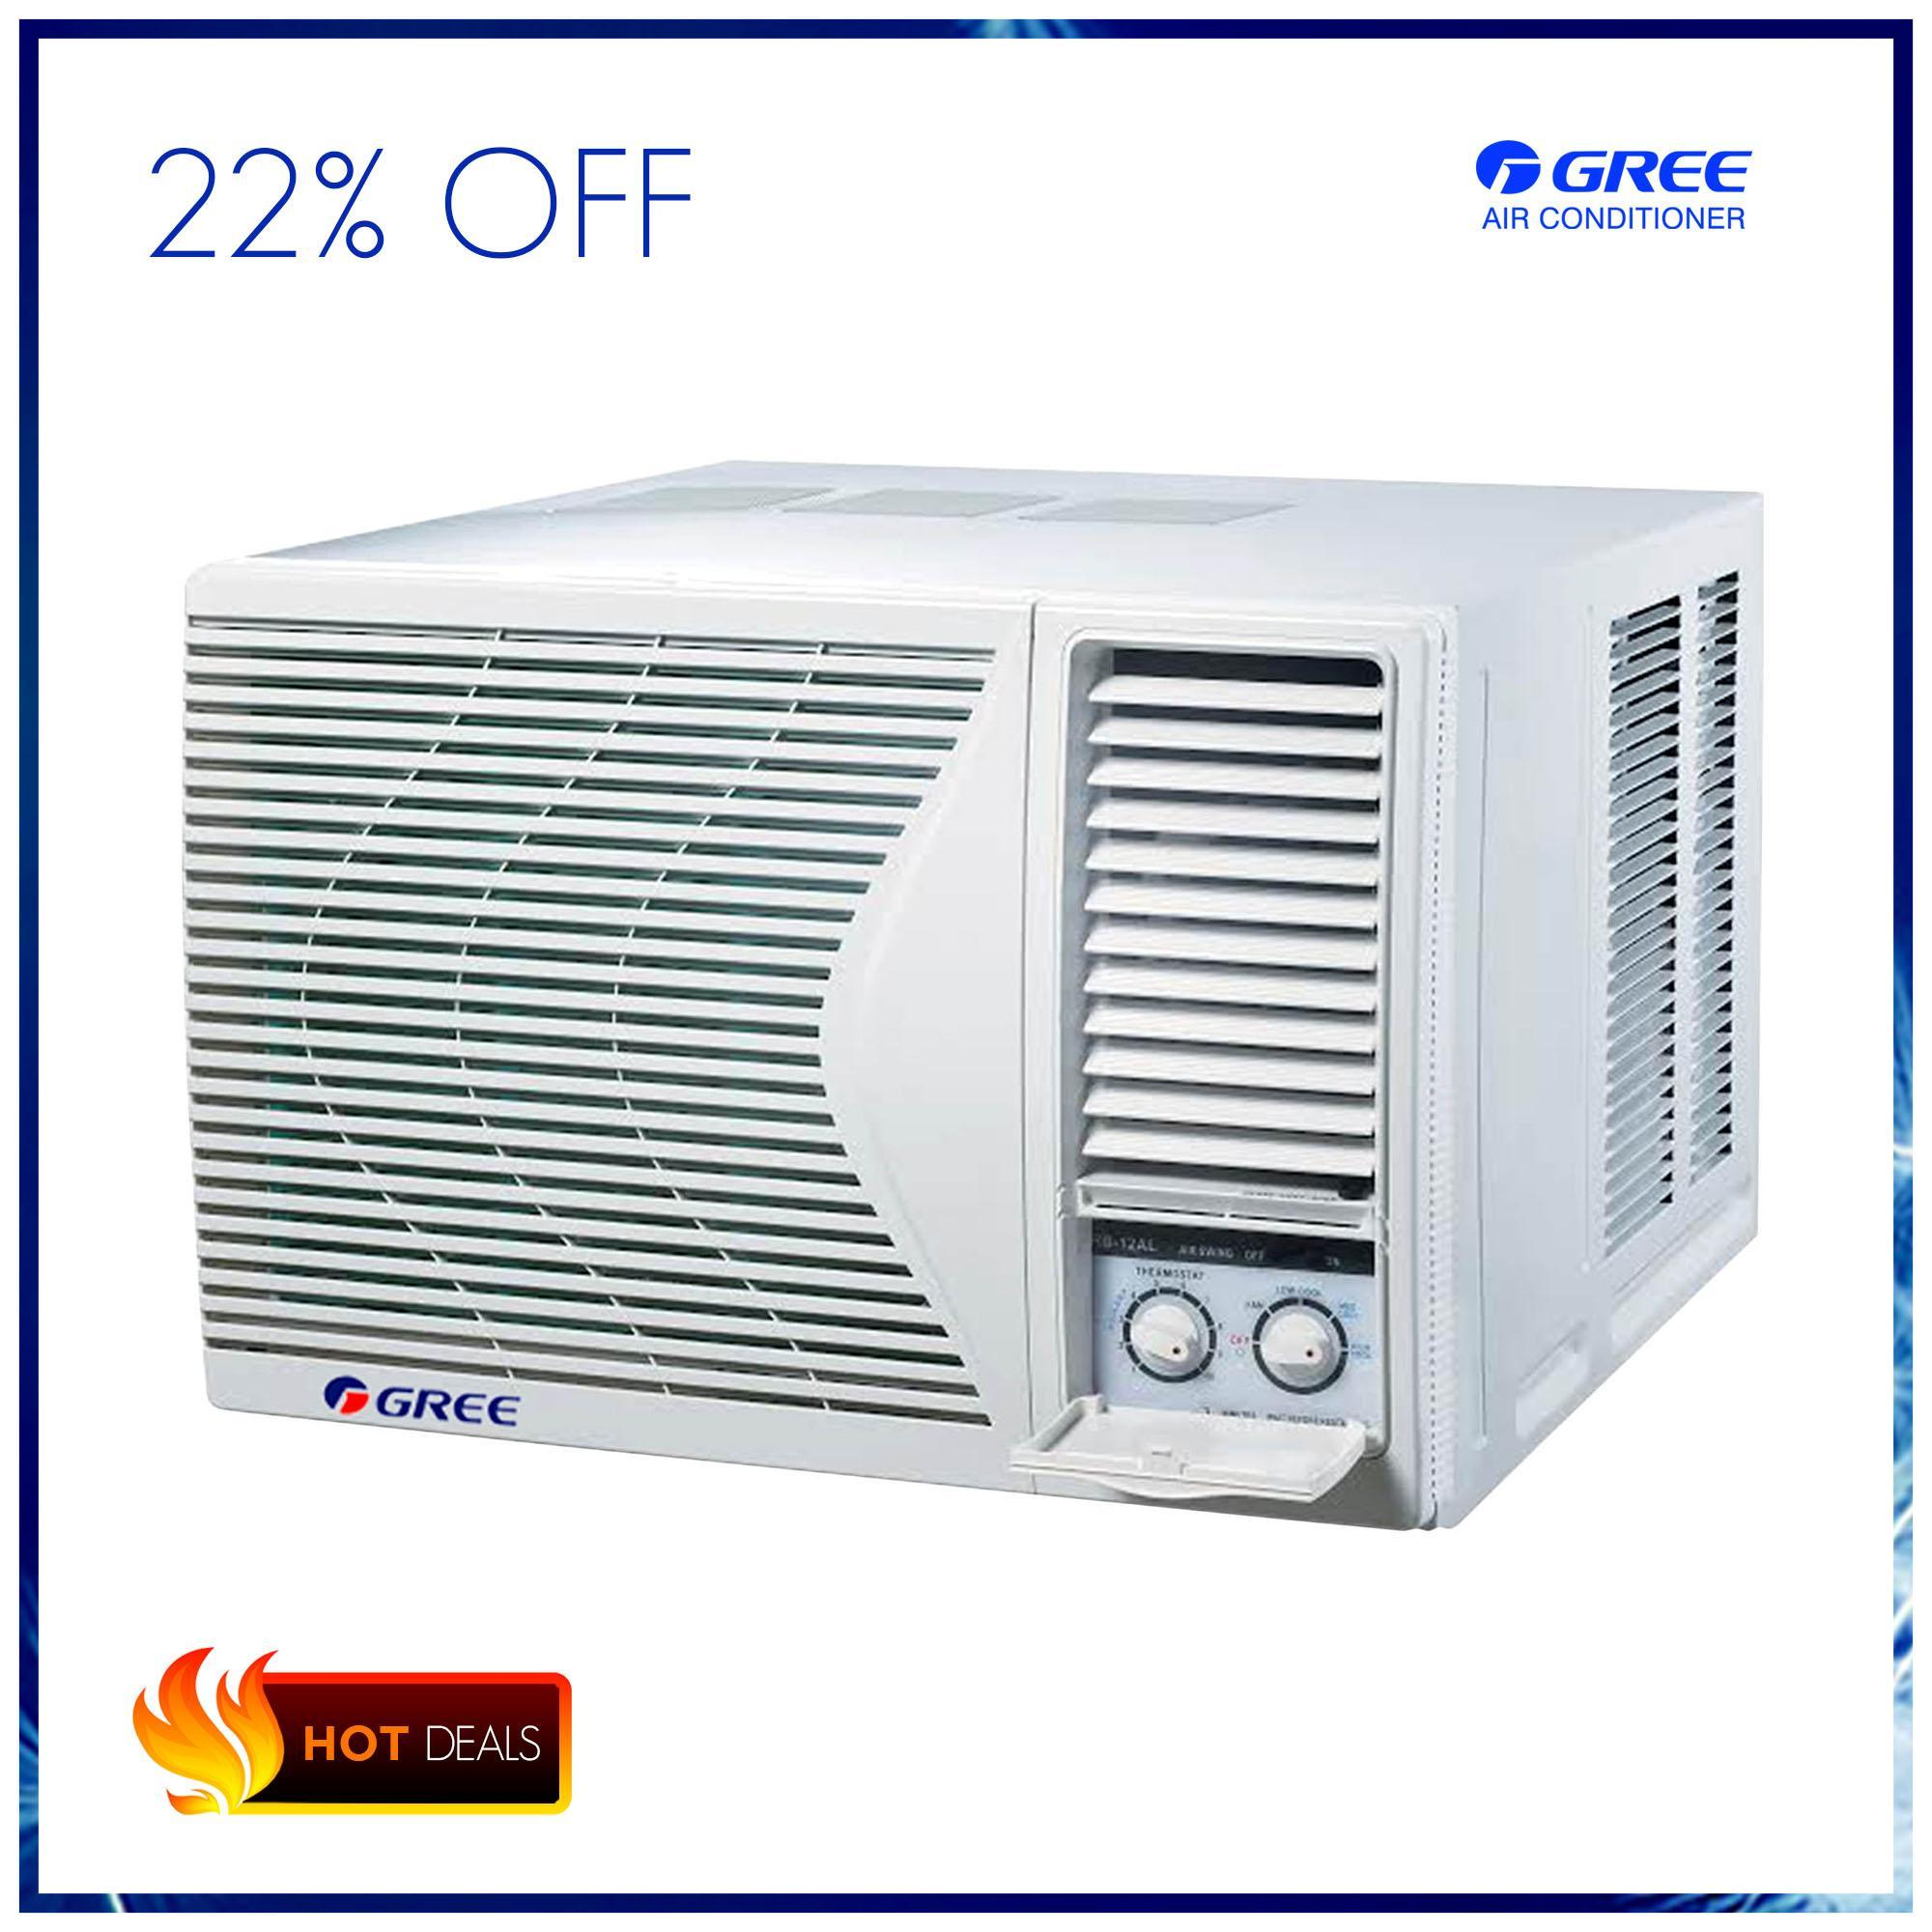 Gree Philippines - Gree Aircon for sale - prices & reviews | Lazada